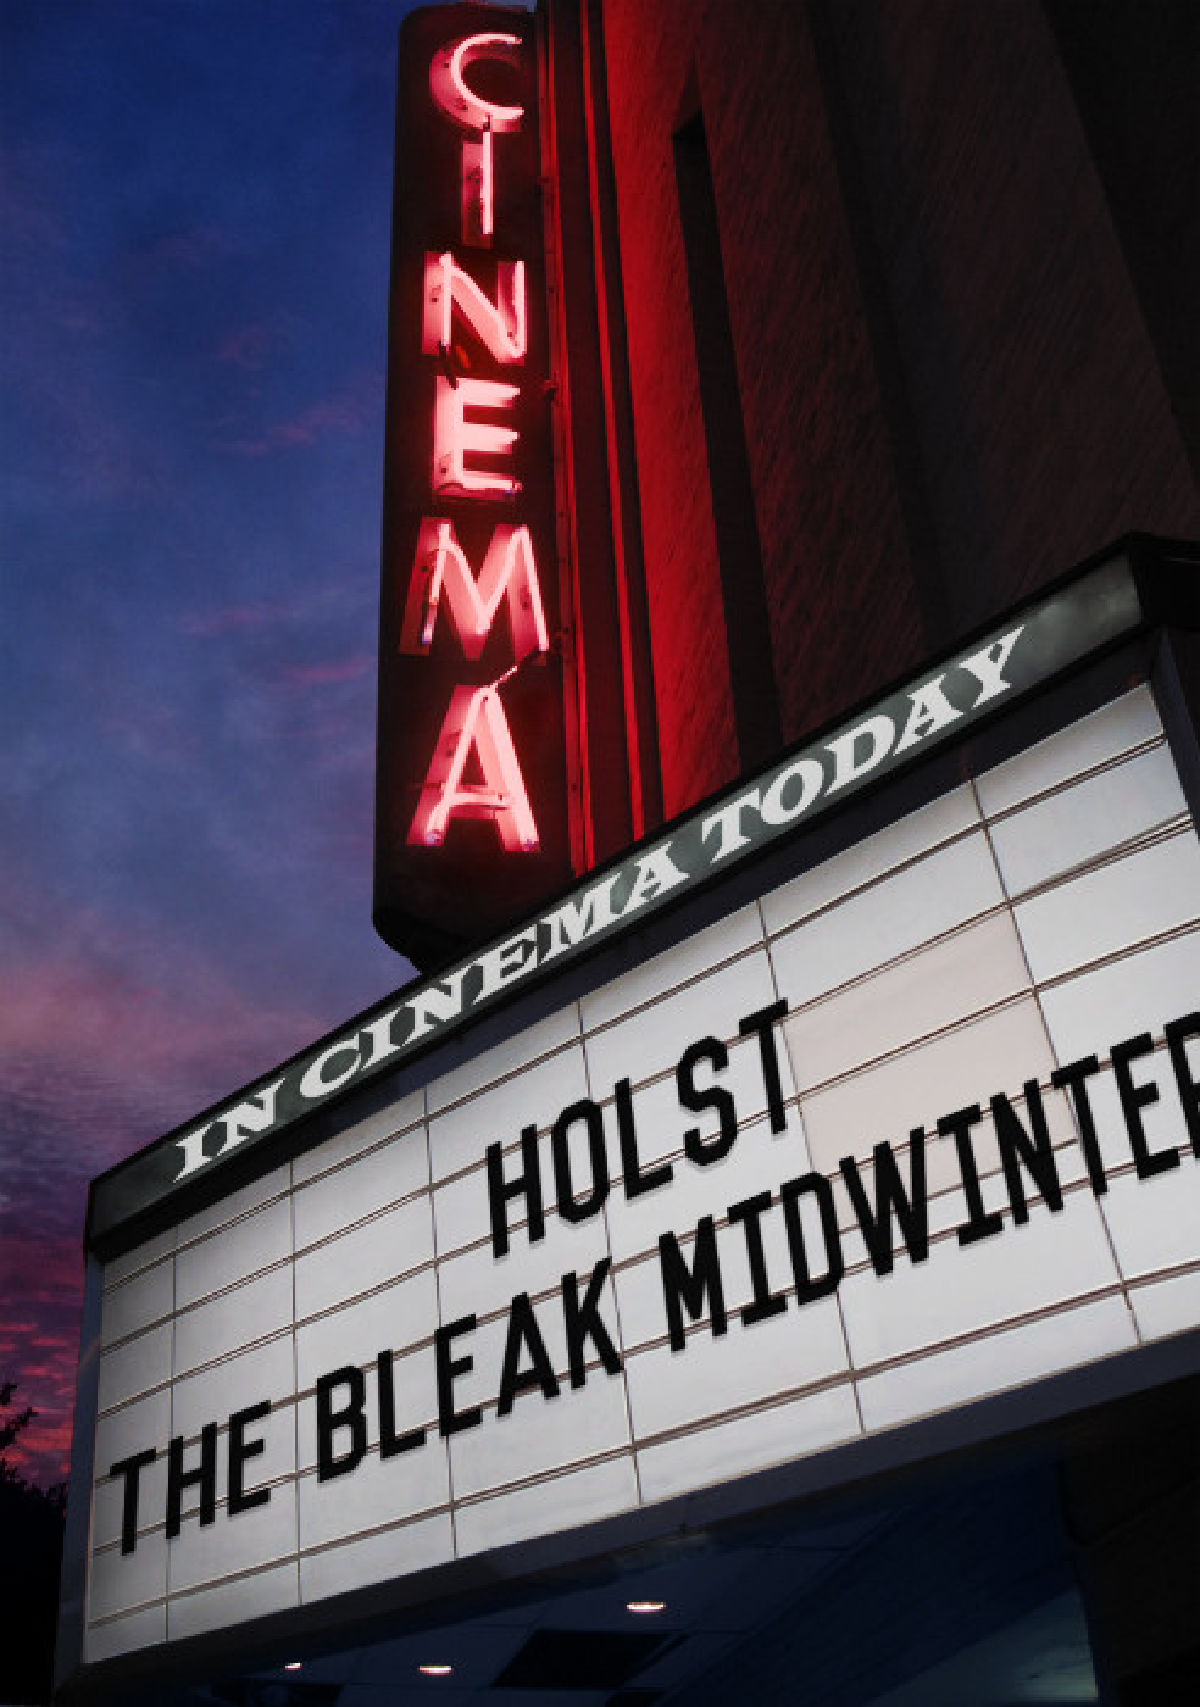 'Holst: In The Bleak Midwinter' movie poster